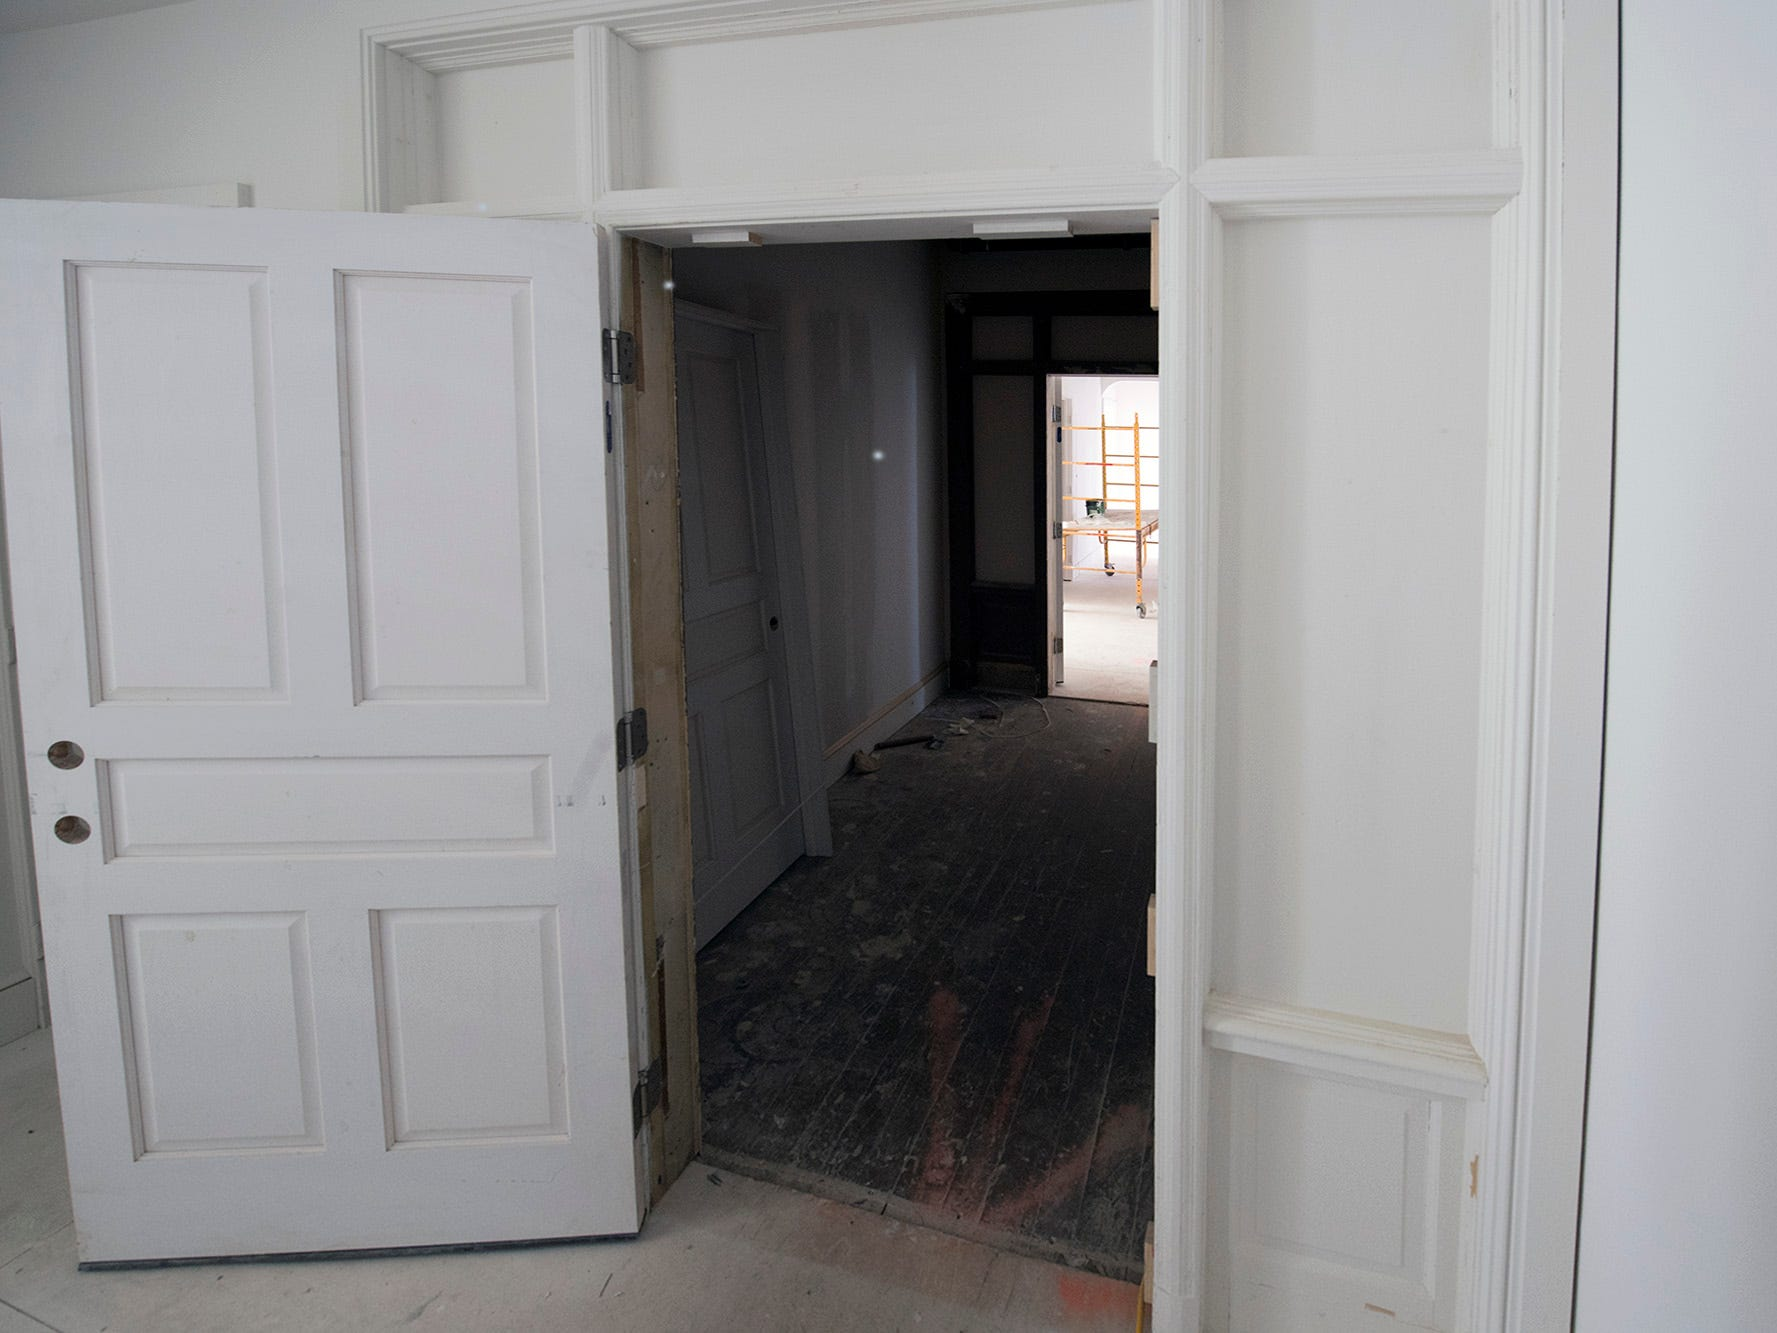 A complete original doorway and framing were removed to make the space of an apartment more efficient at the Doll Building at 337 W. Market Street in York.